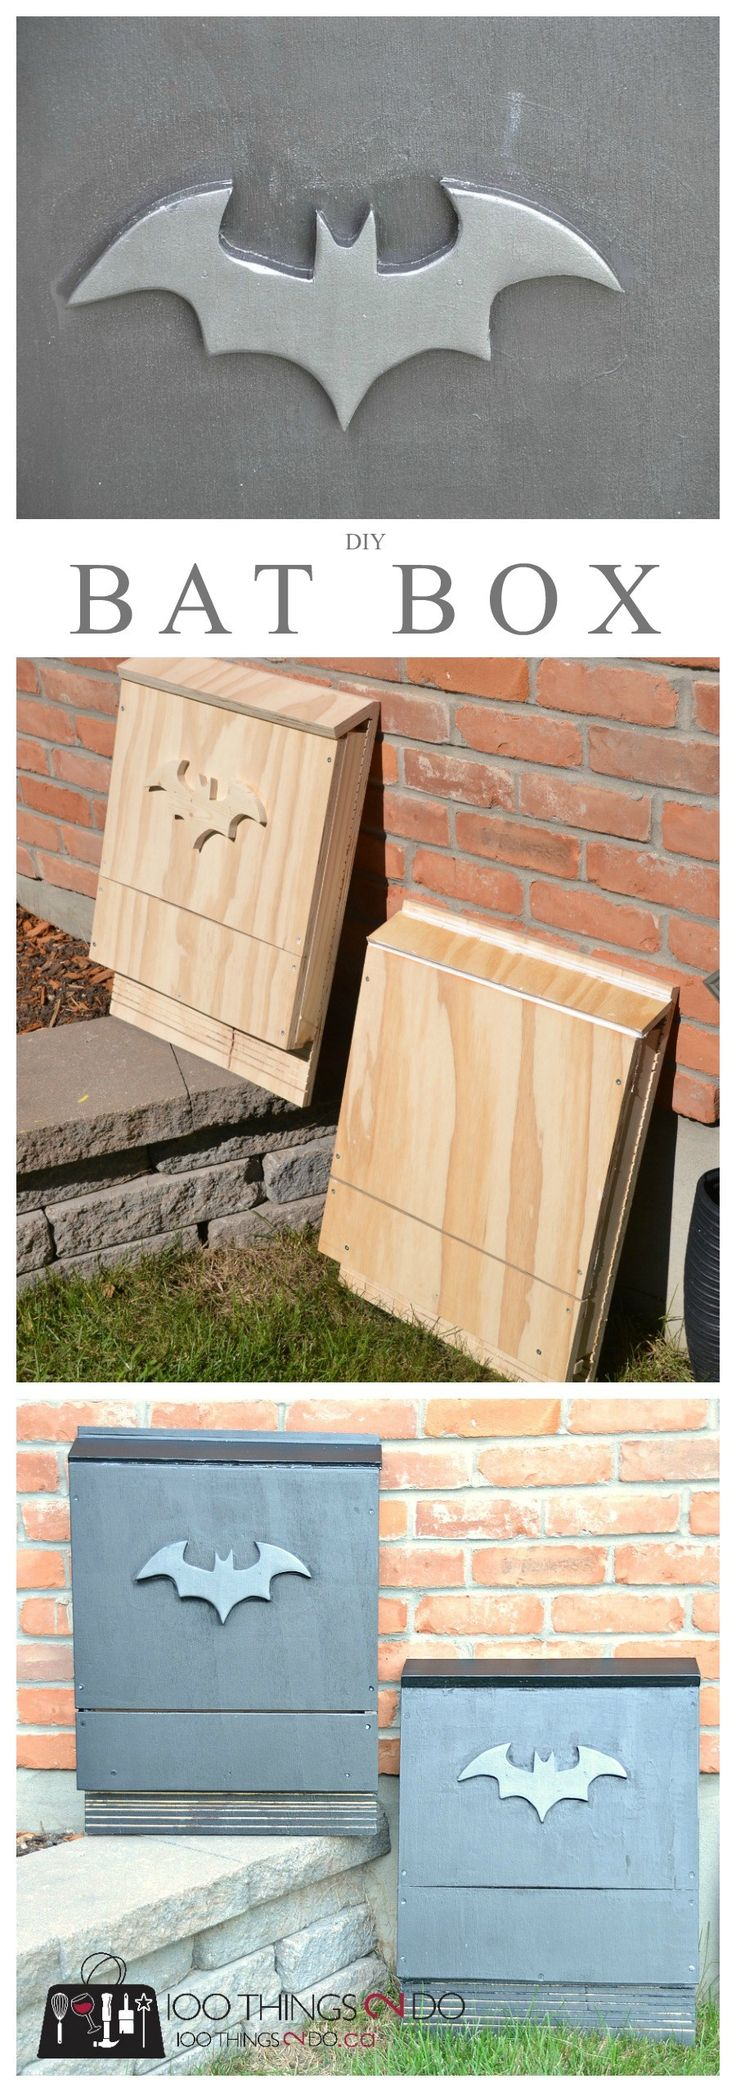 DIY bat box Bat house plans, Bat house diy, Bat box